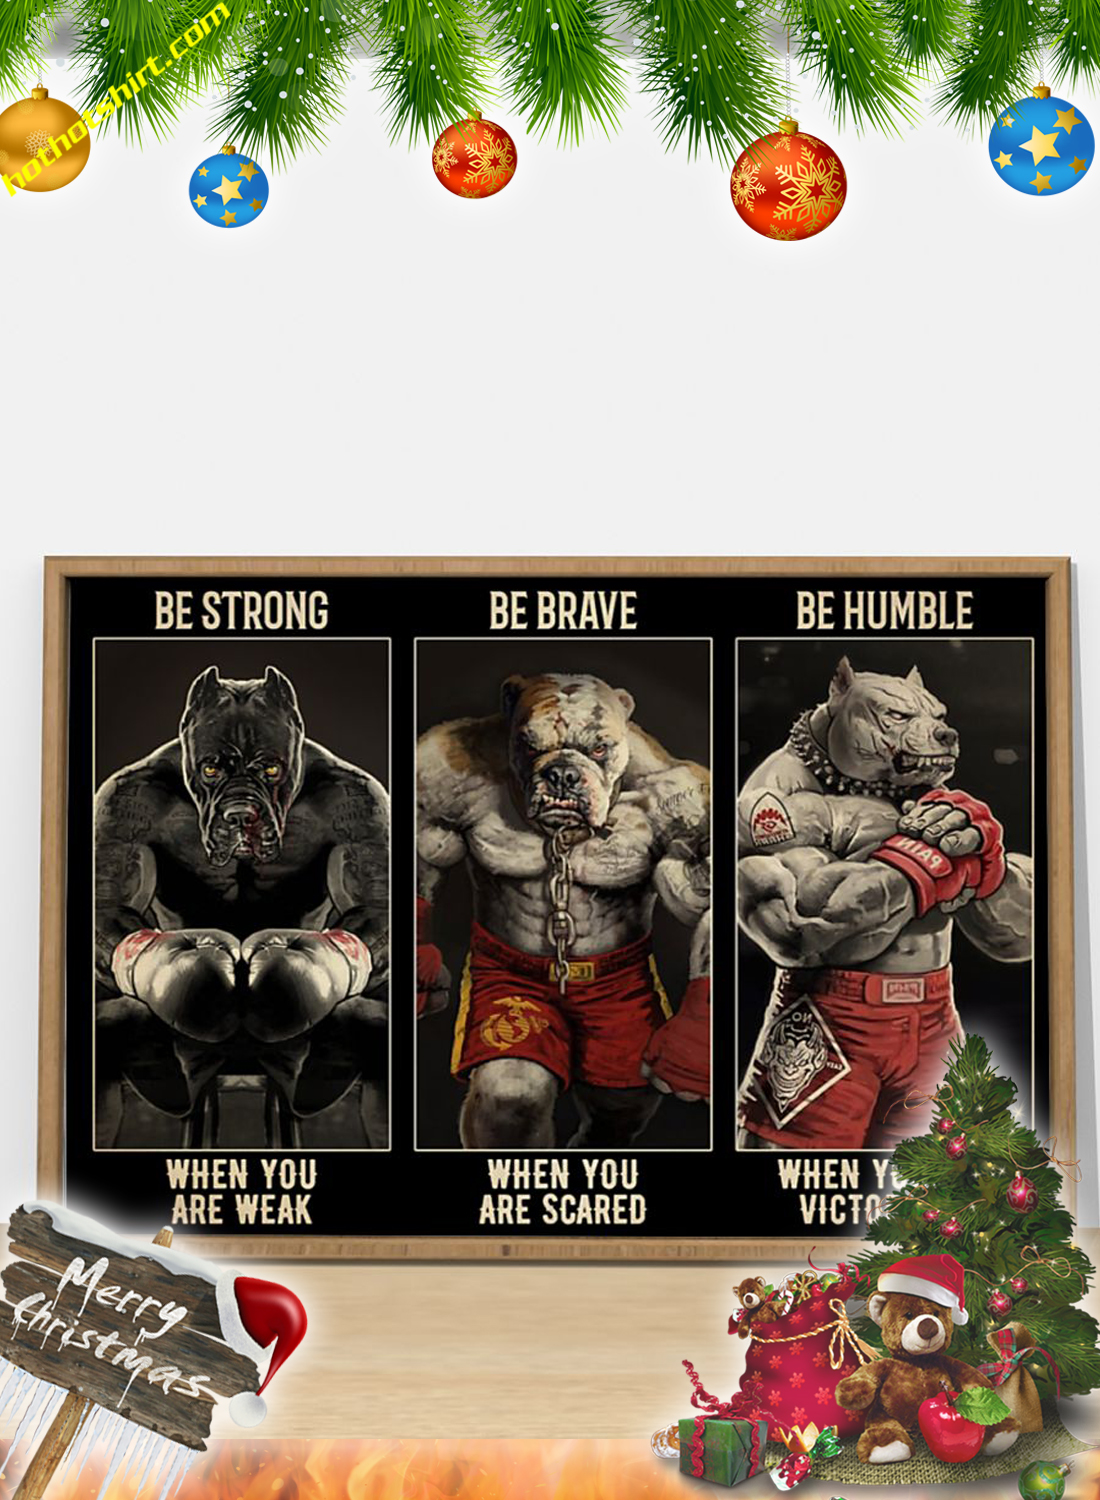 Pitbull Boxing Be strong be brave be humble poster 1